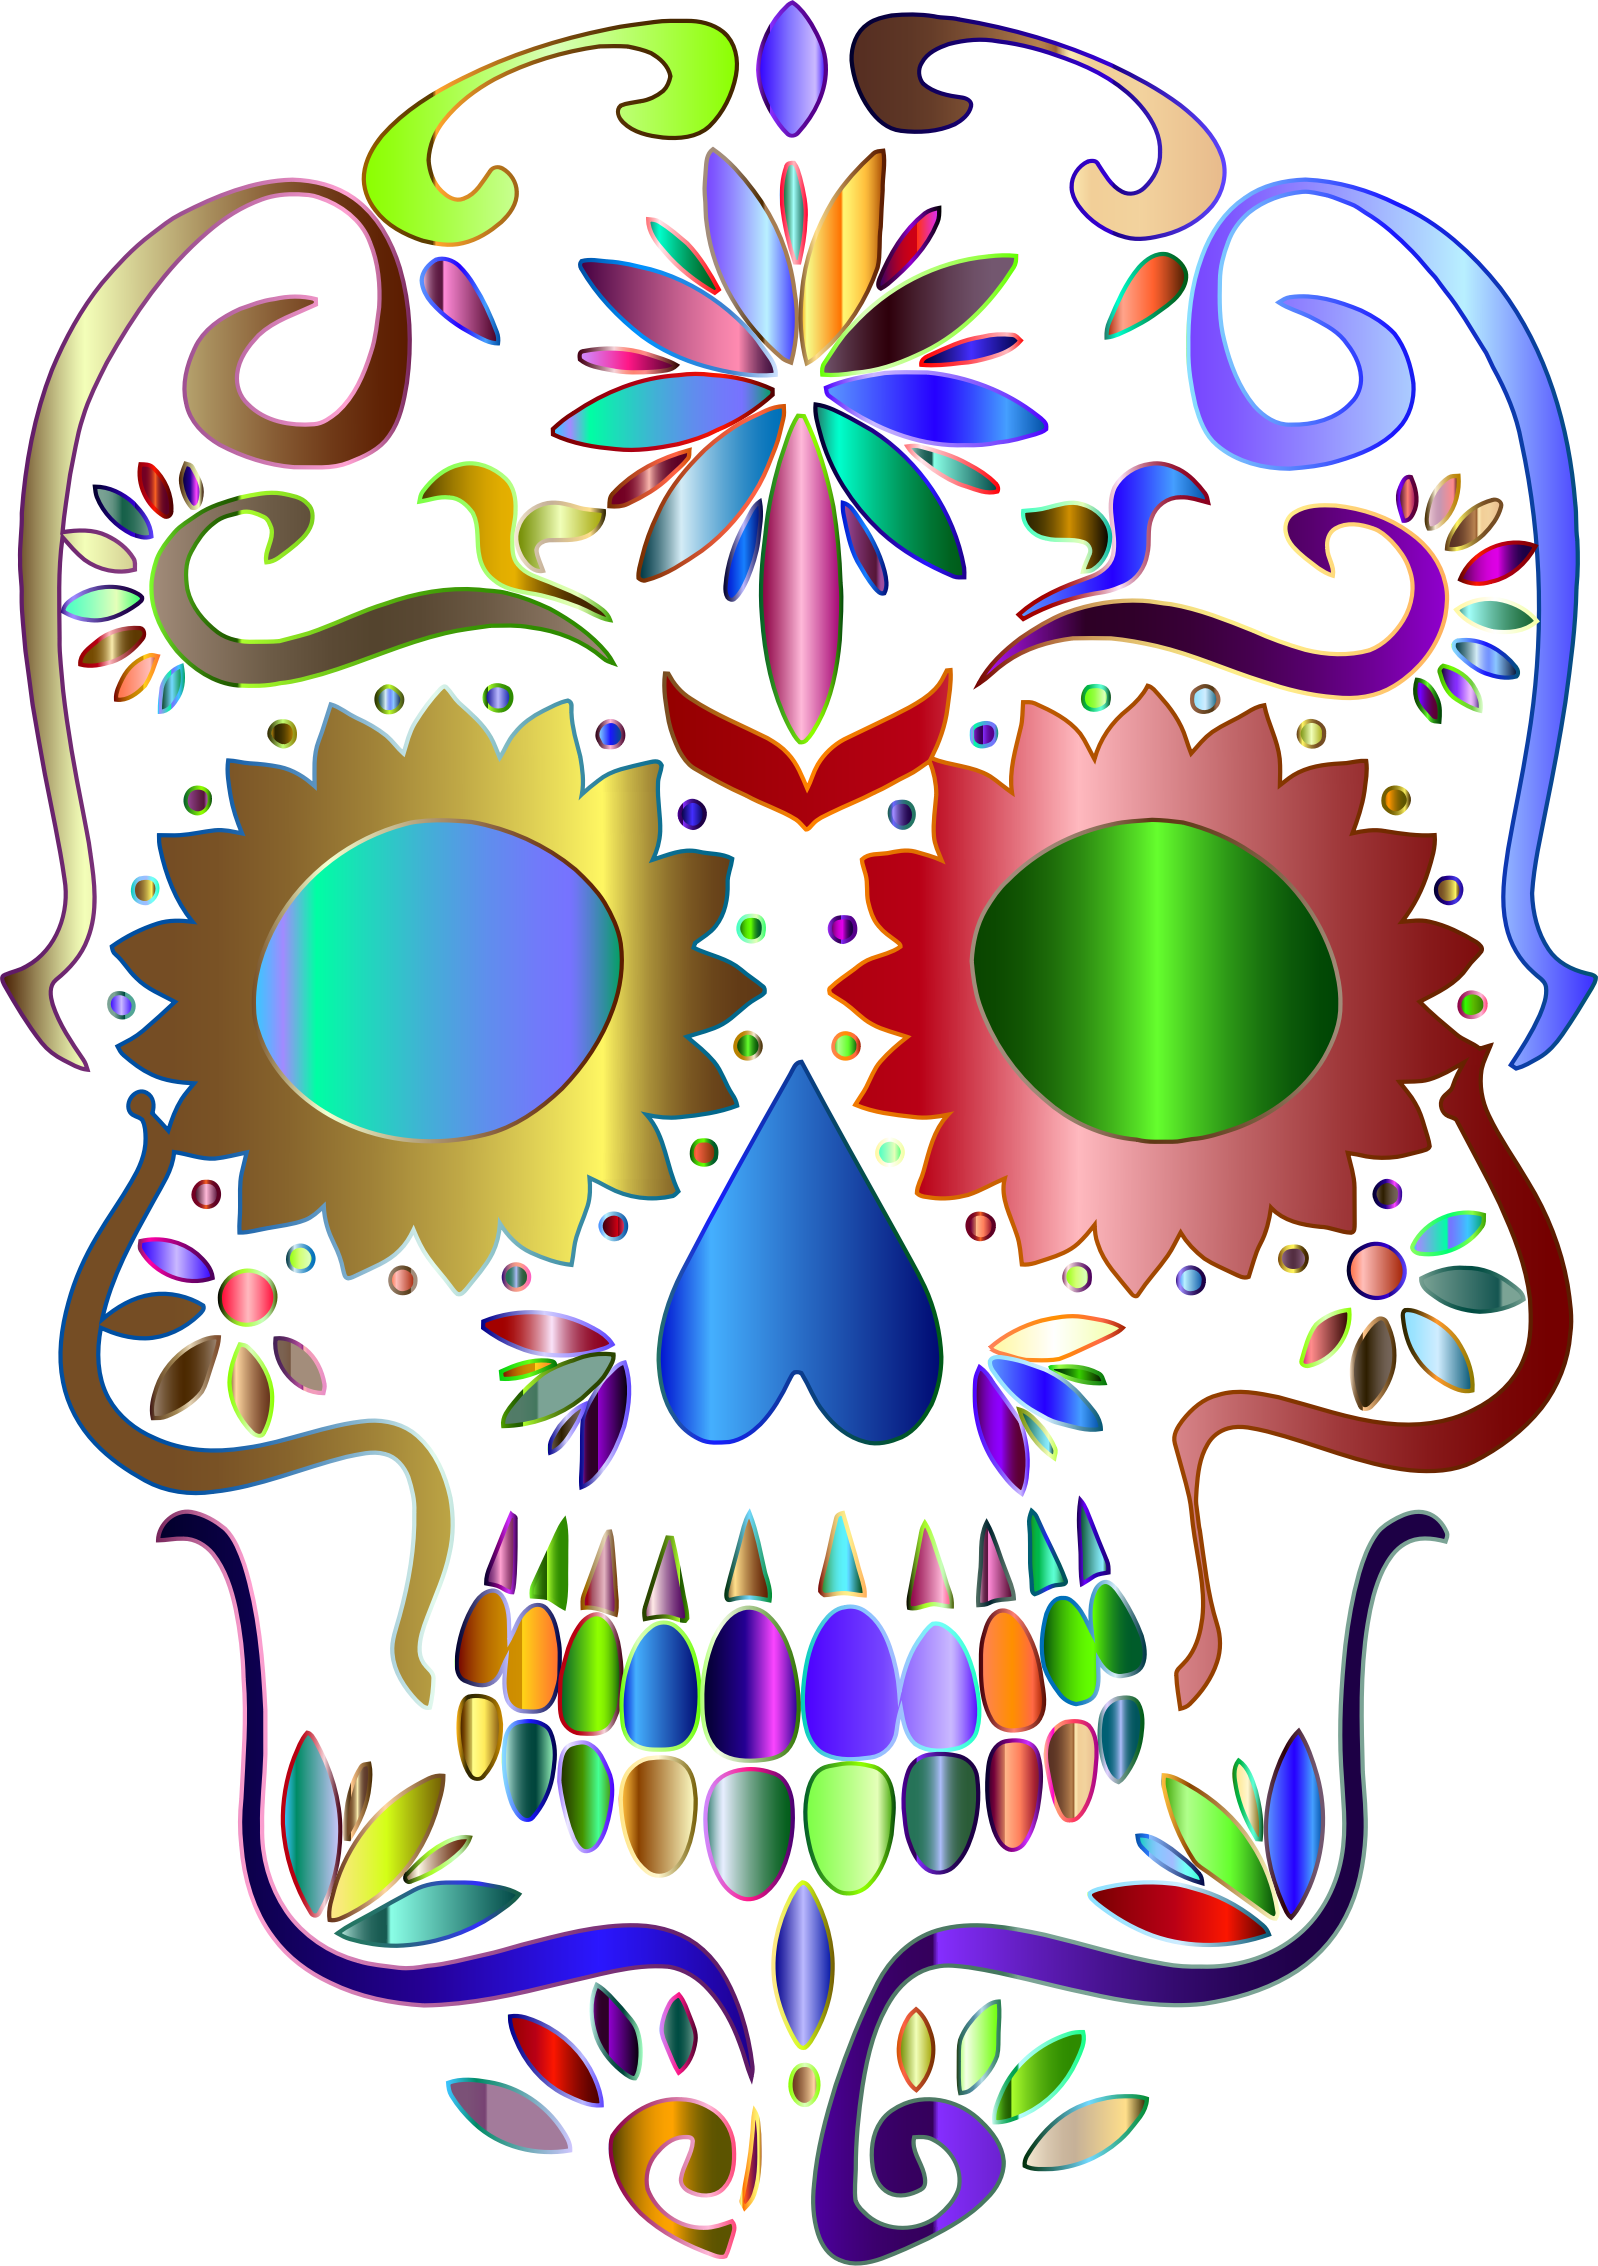 Prismatic Sugar Skull Silhouette 4 No Background by GDJ